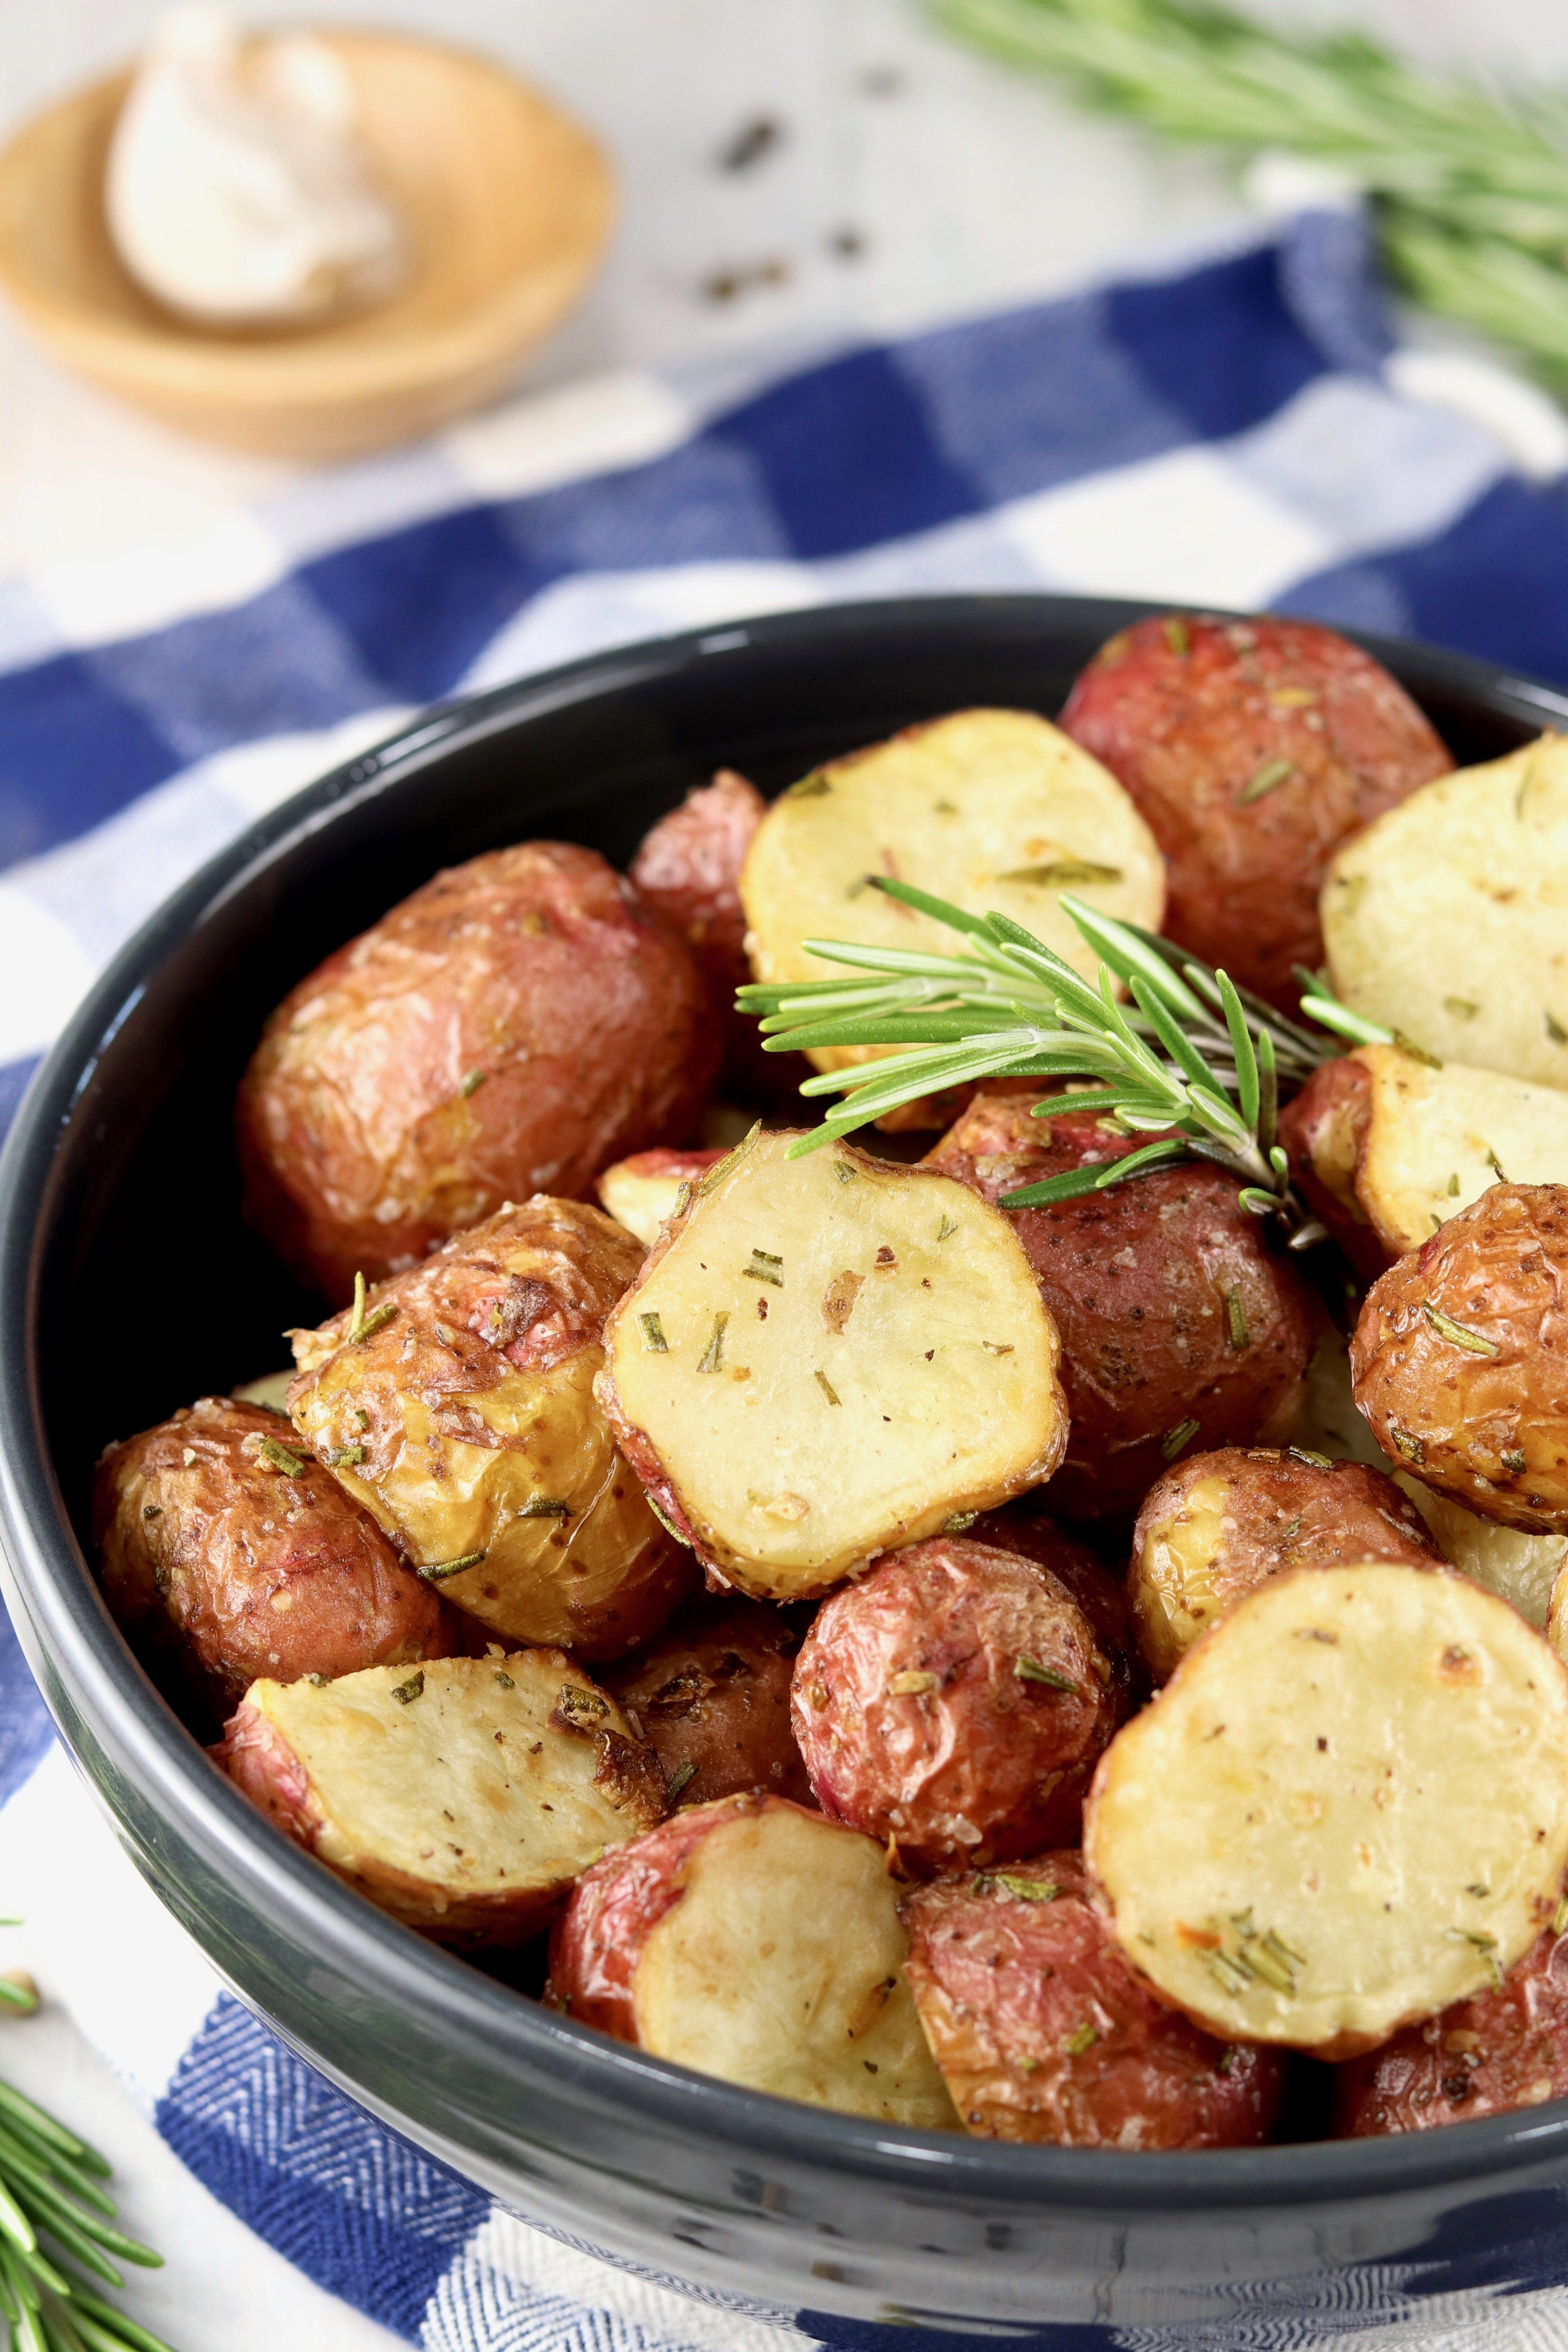 Air fryer roasted potatoes with garlic herbs miss in